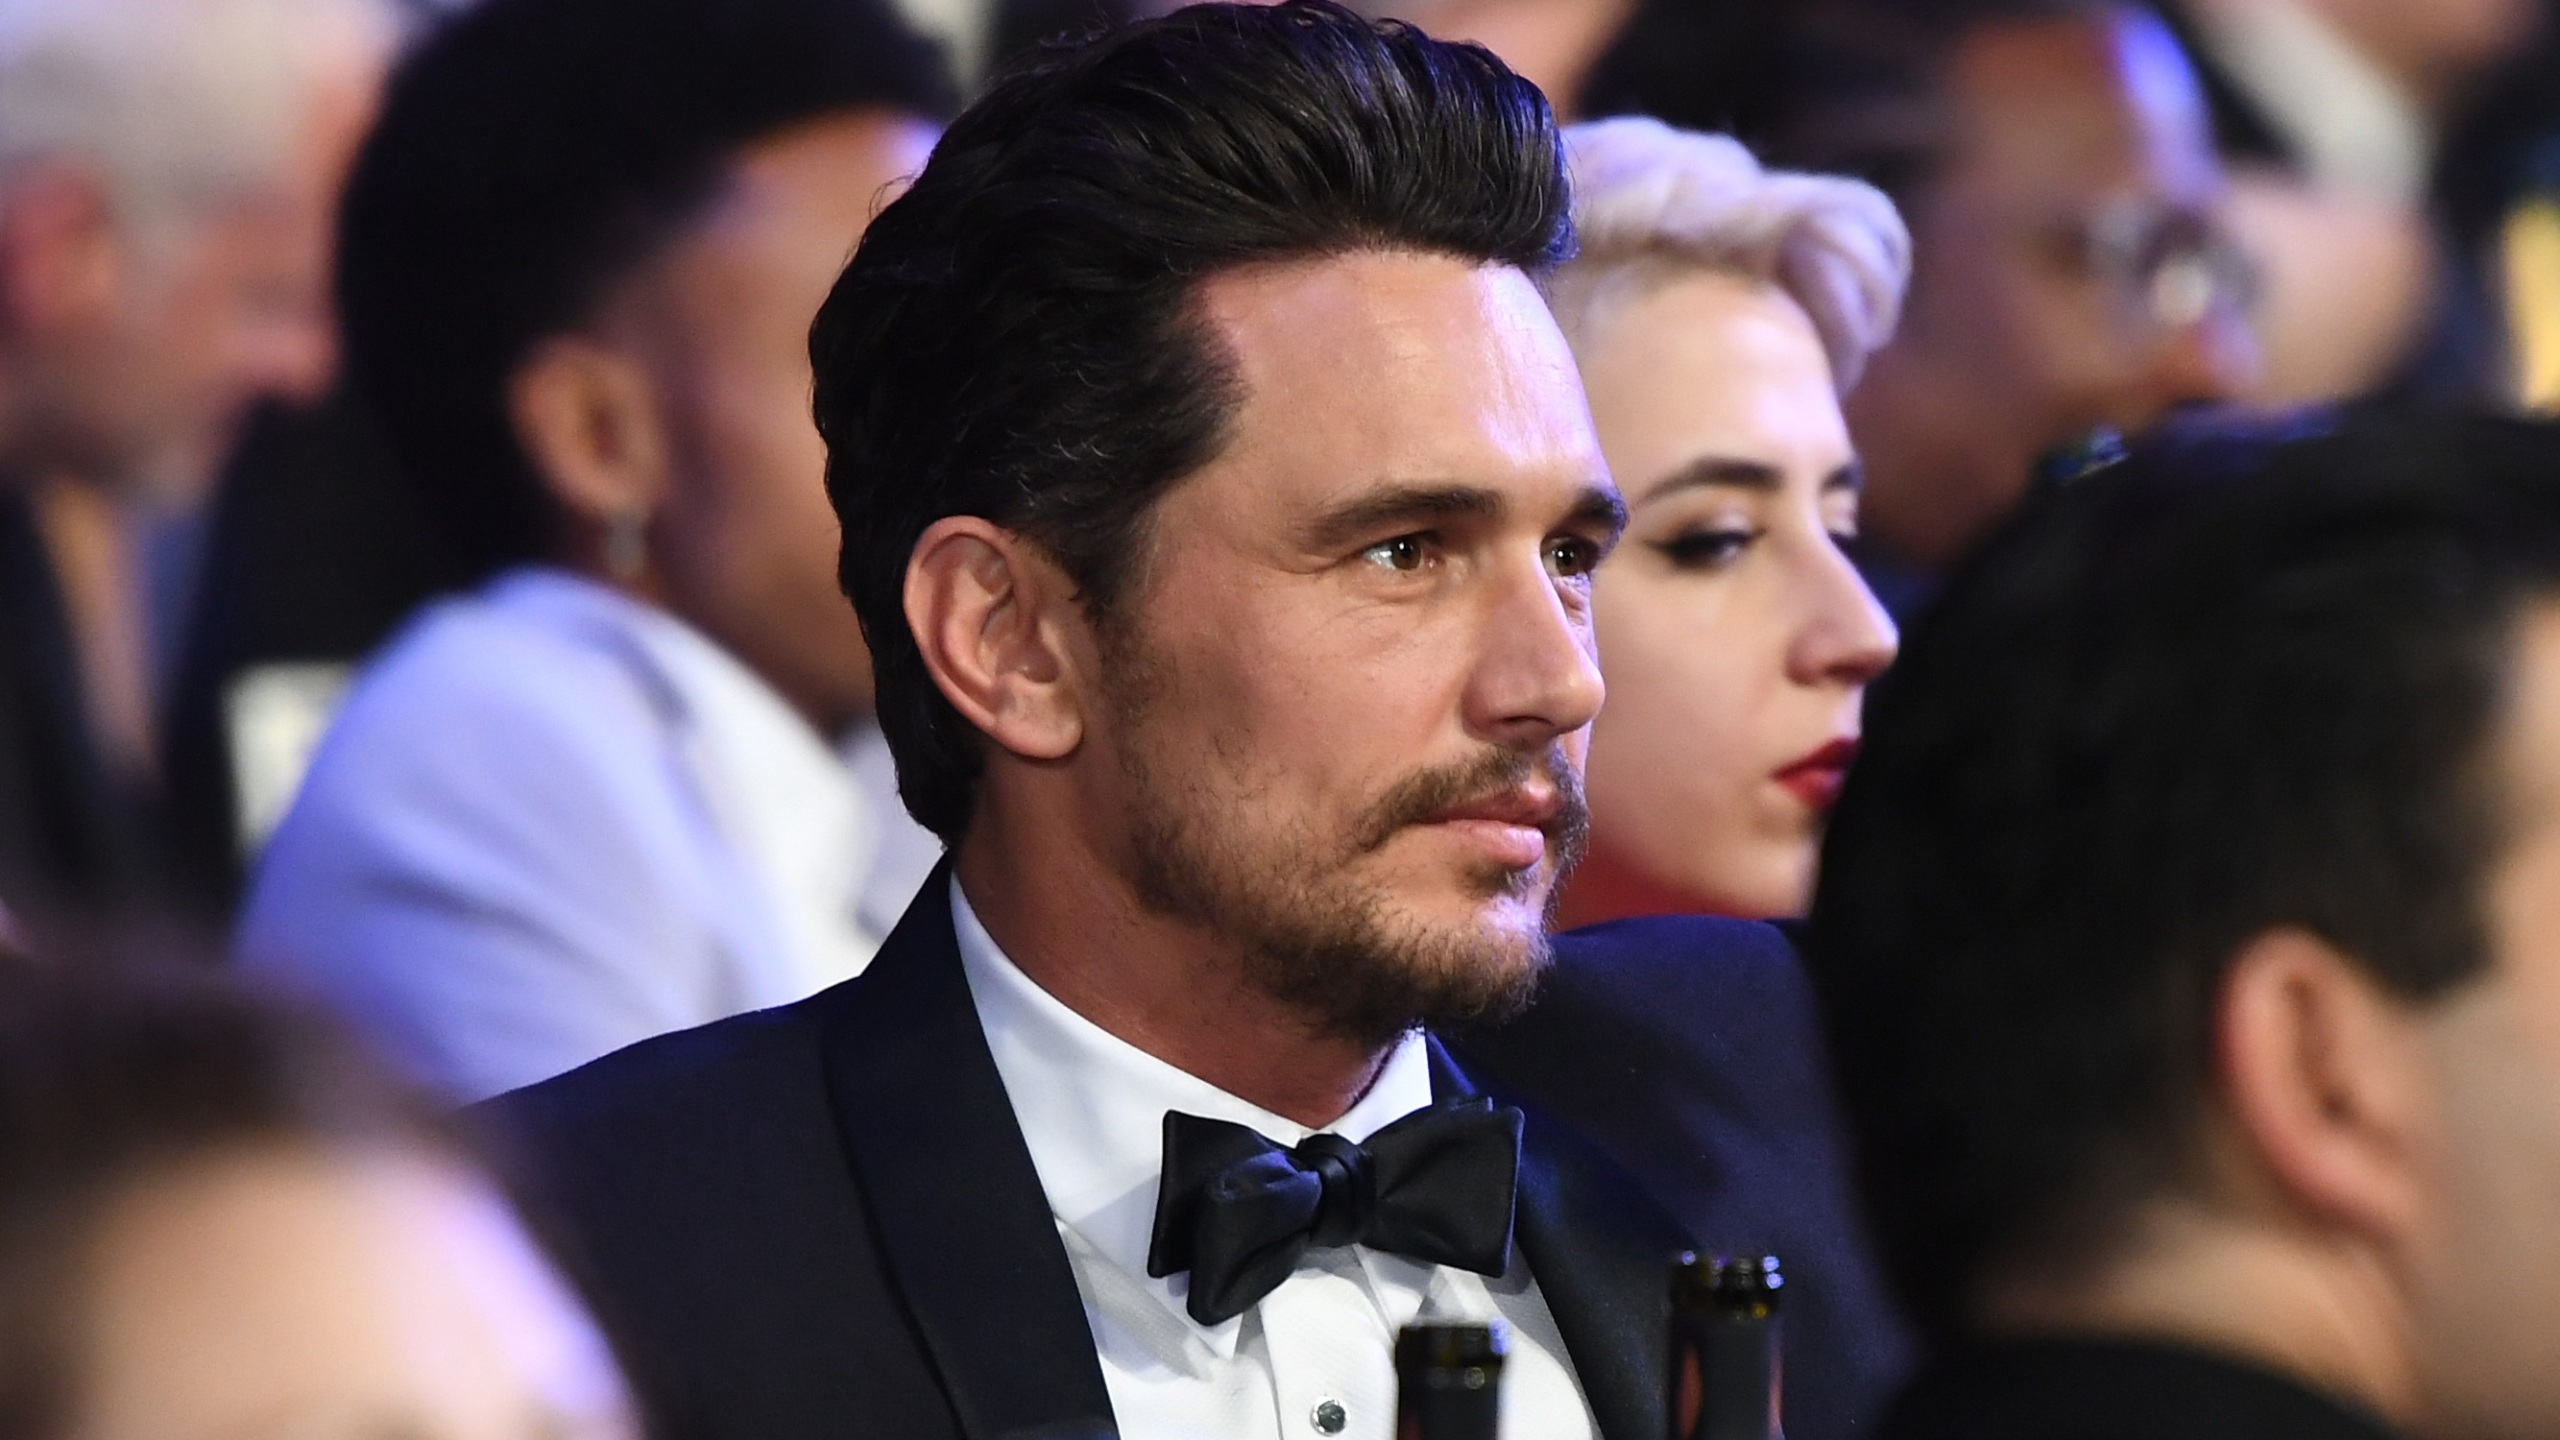 Actor James Franco attends the 24th Annual Screen Actors Guild Awards at The Shrine Auditorium on Jan. 21, 2018 in Los Angeles. (Dimitrios Kambouris/Getty Images for Turner)